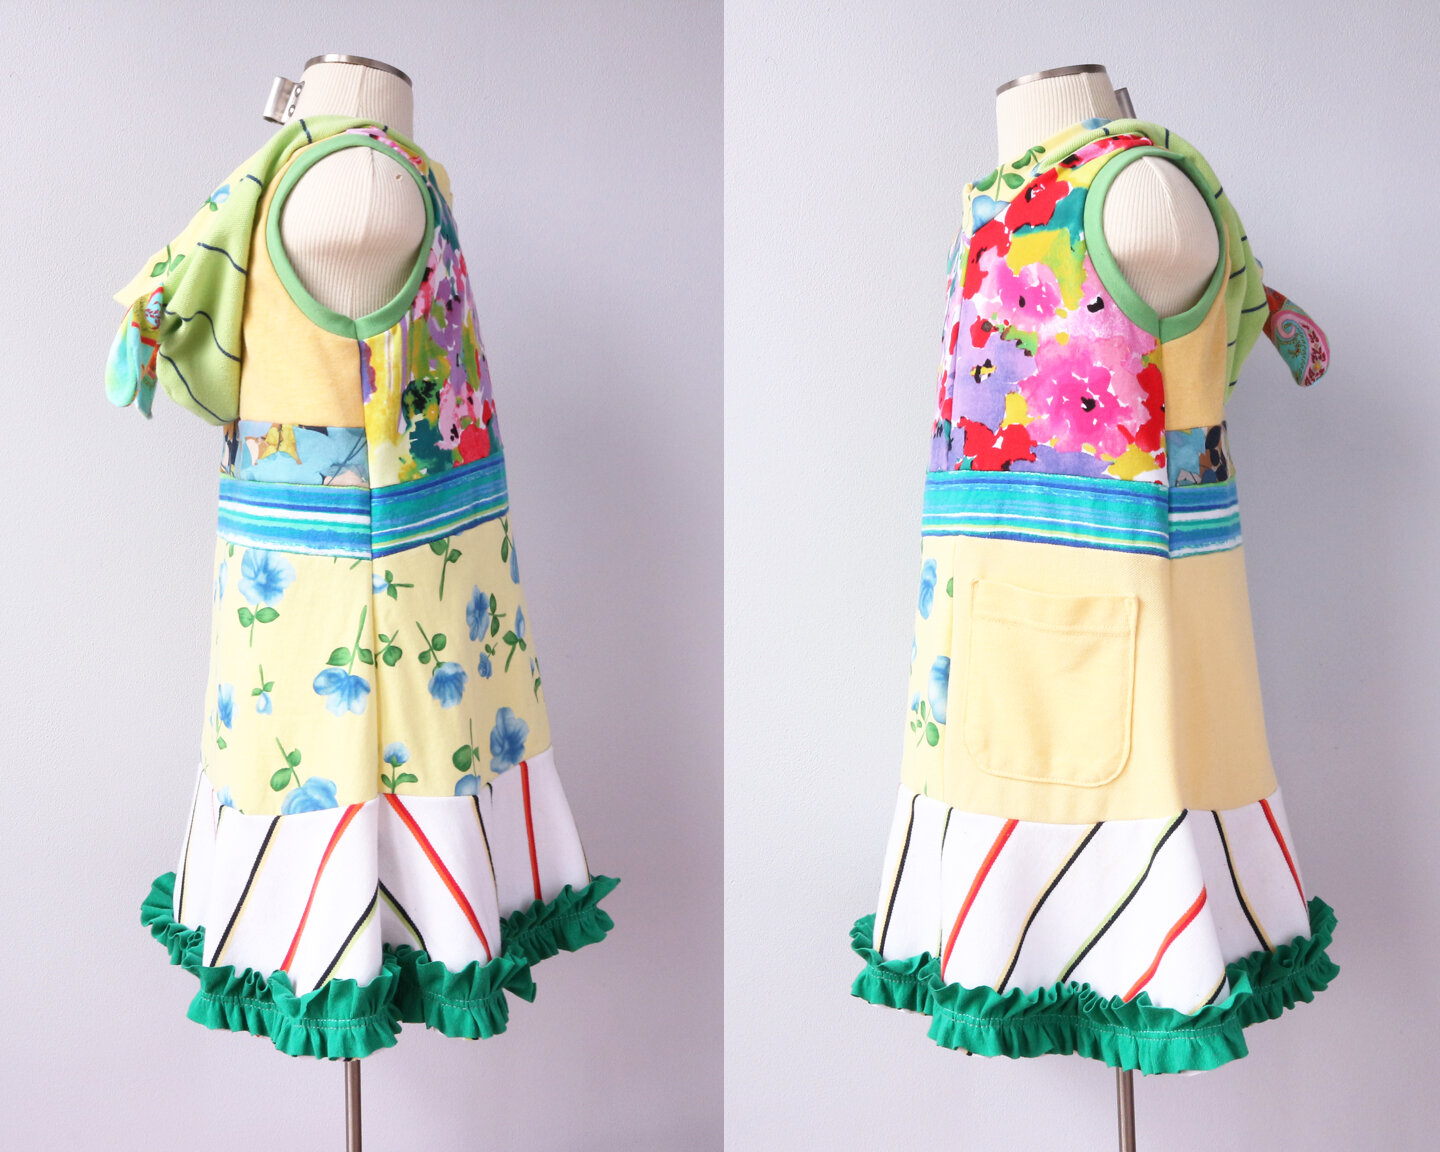 form side ⅚ yellow:floral:ruffle:pocket:bunny:hoodie.jpg